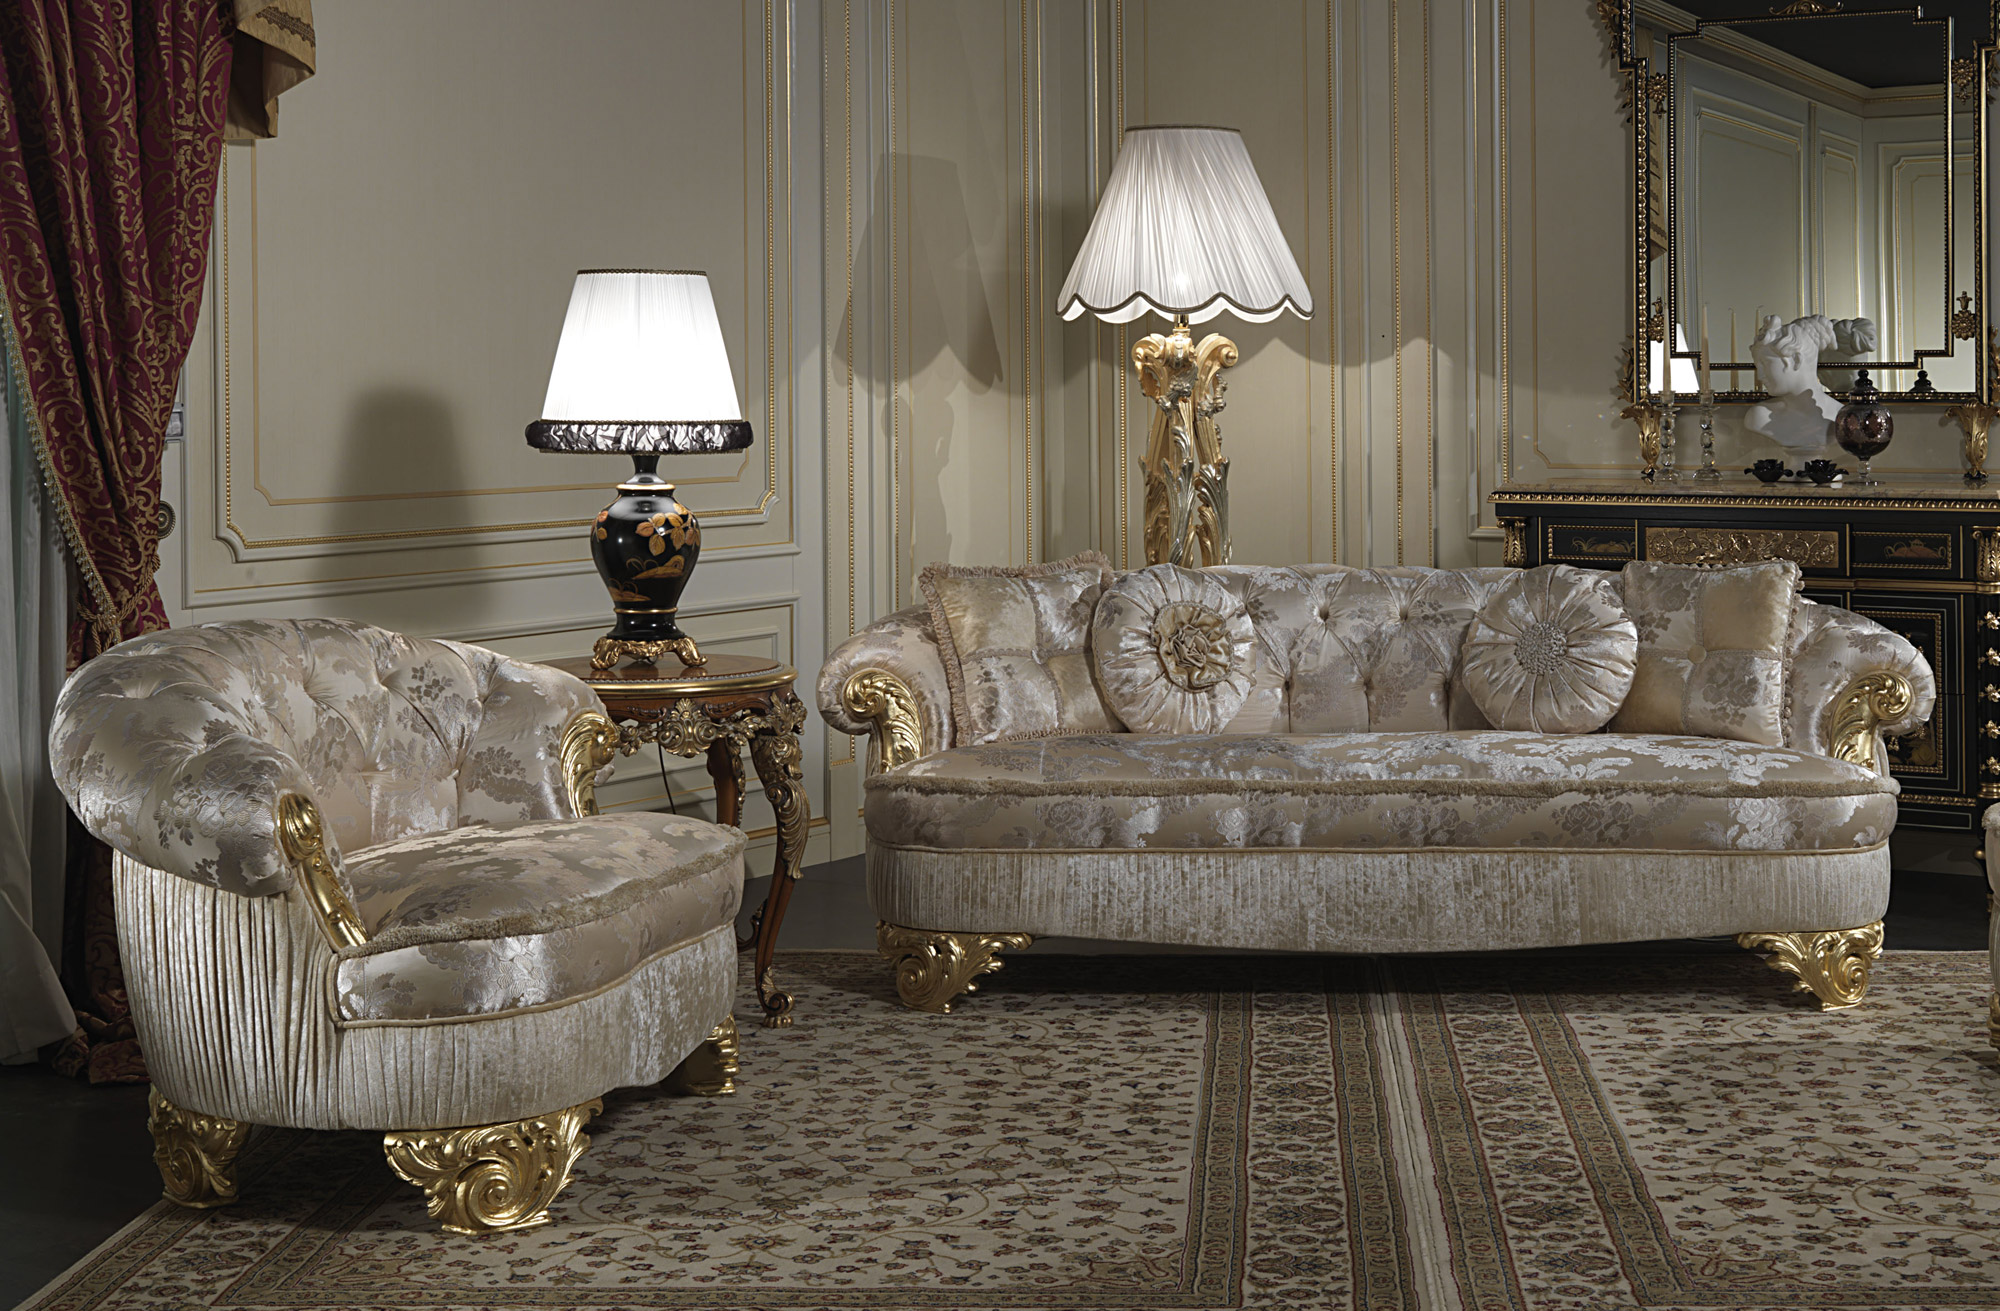 upholstered luxury sofas for classic living room paris vimercati classic furniture. Black Bedroom Furniture Sets. Home Design Ideas